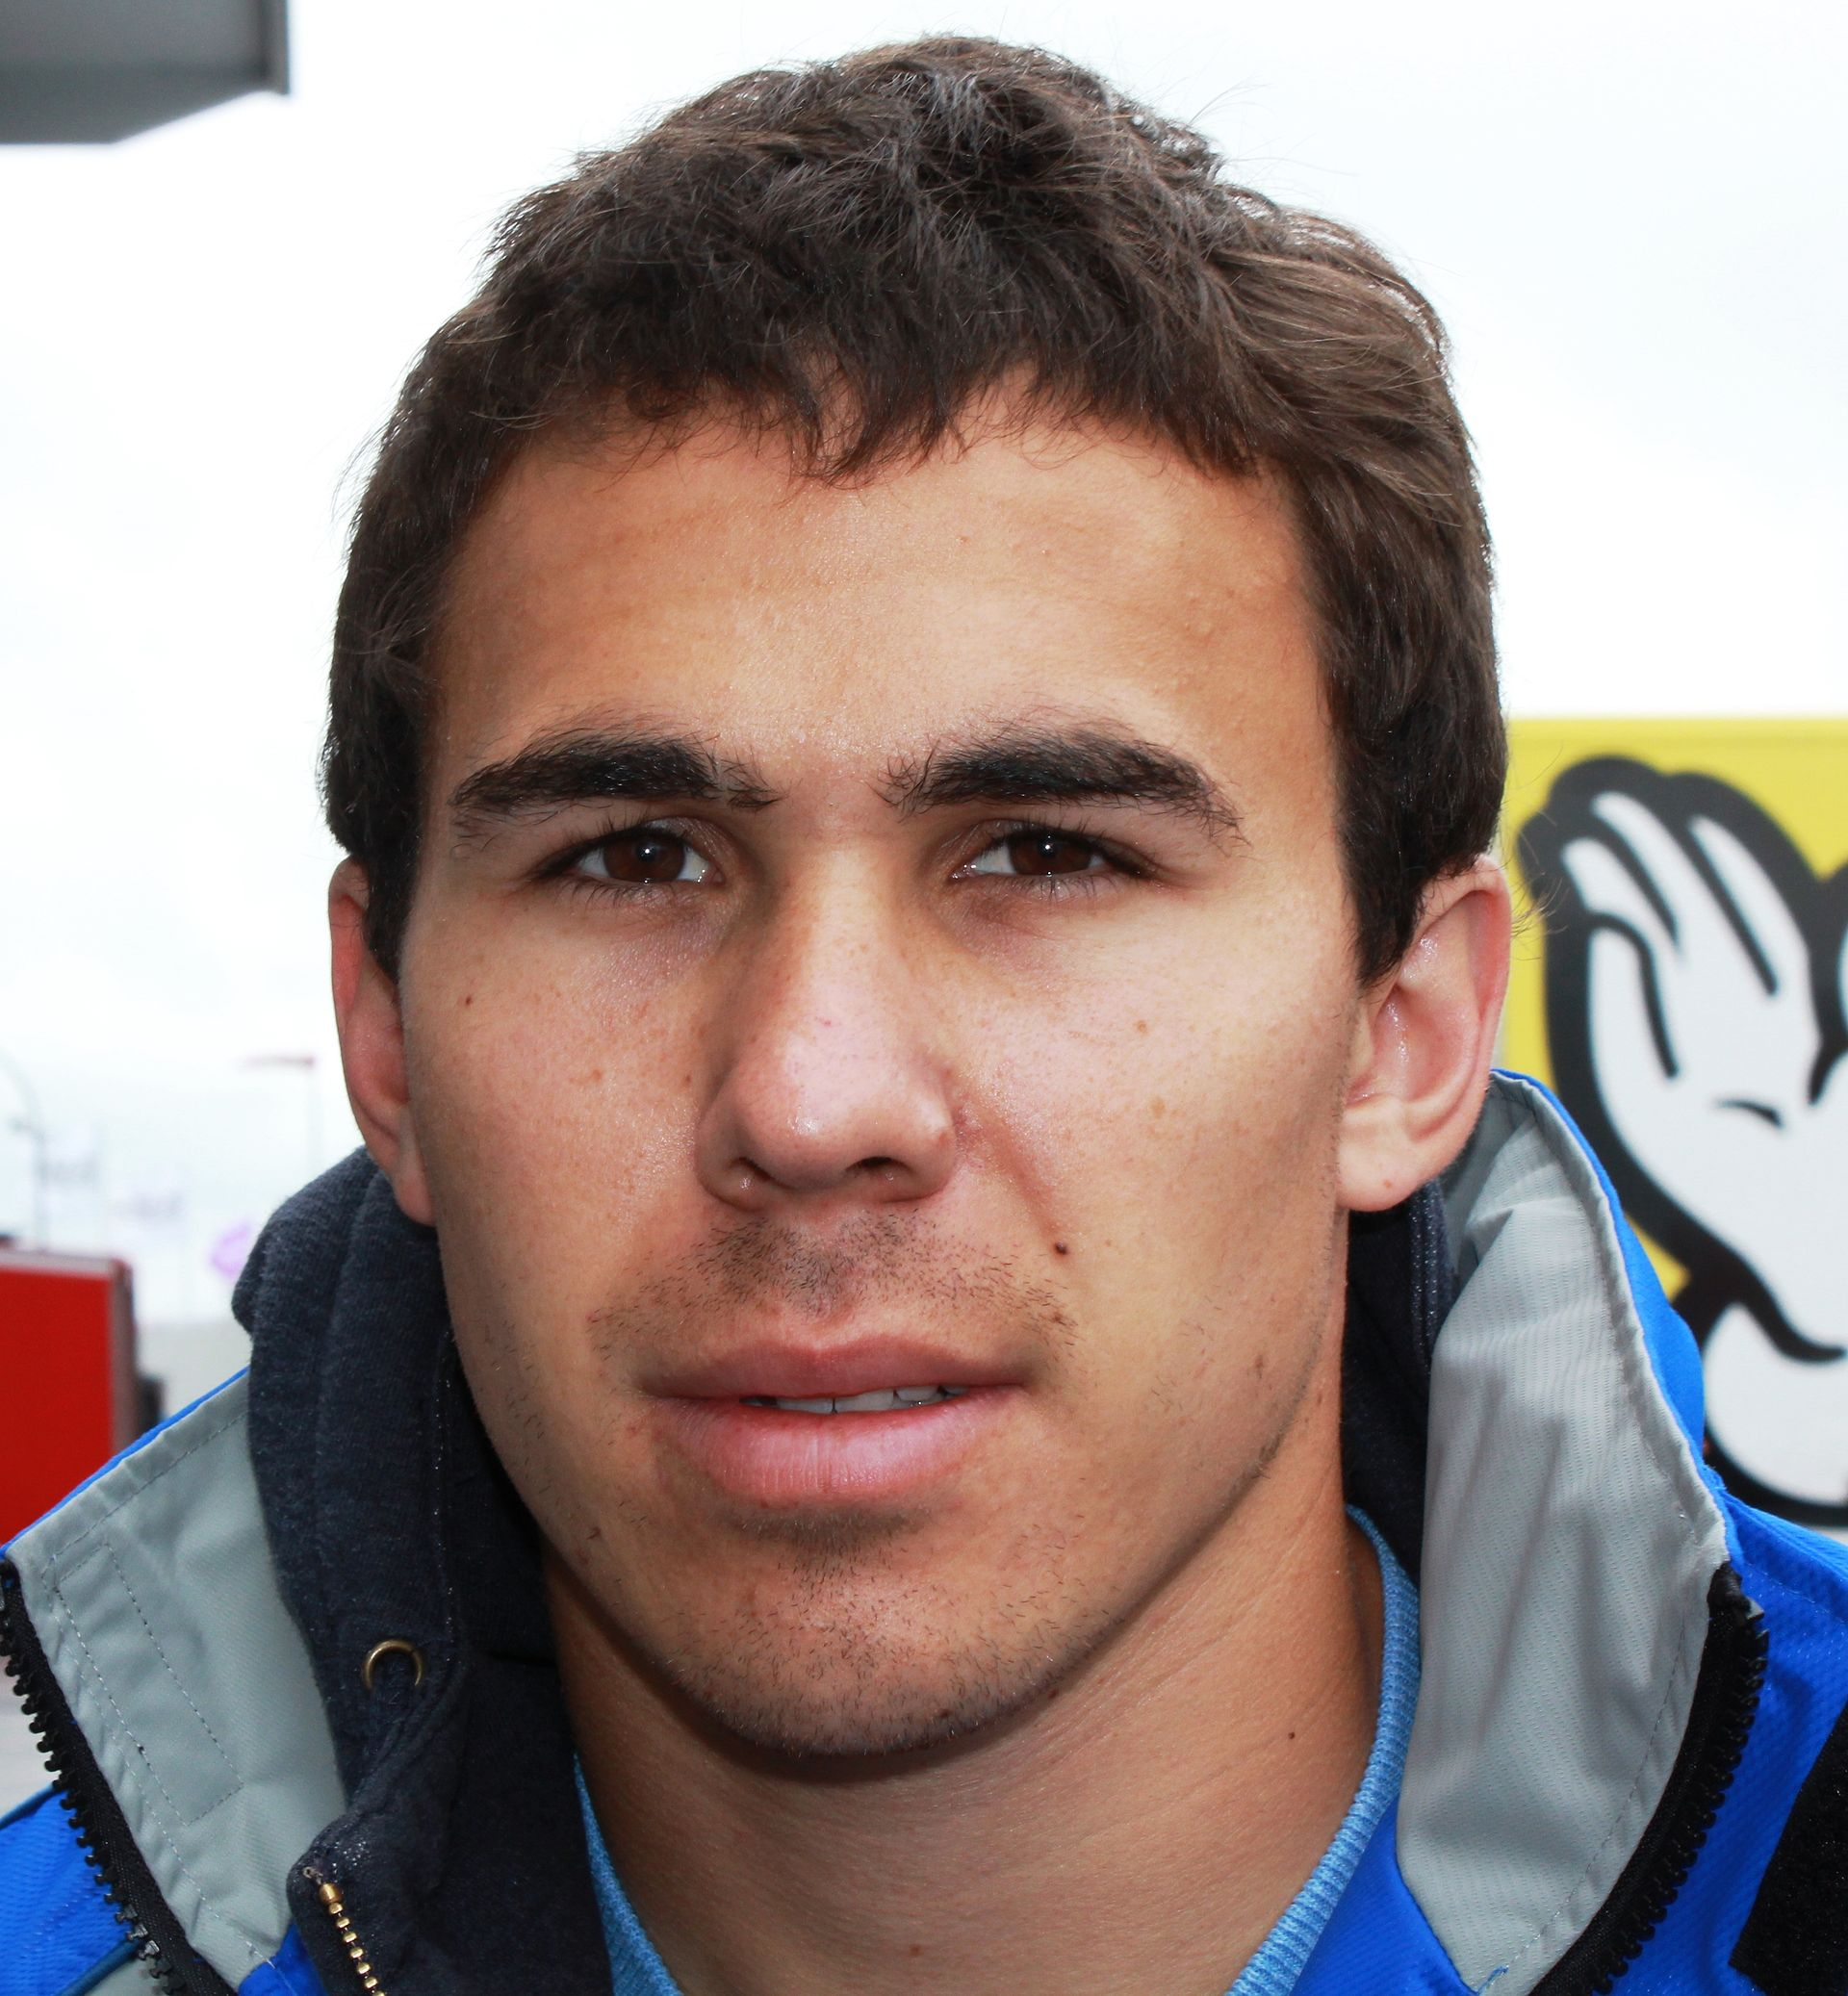 Image Result For Robert Wickens